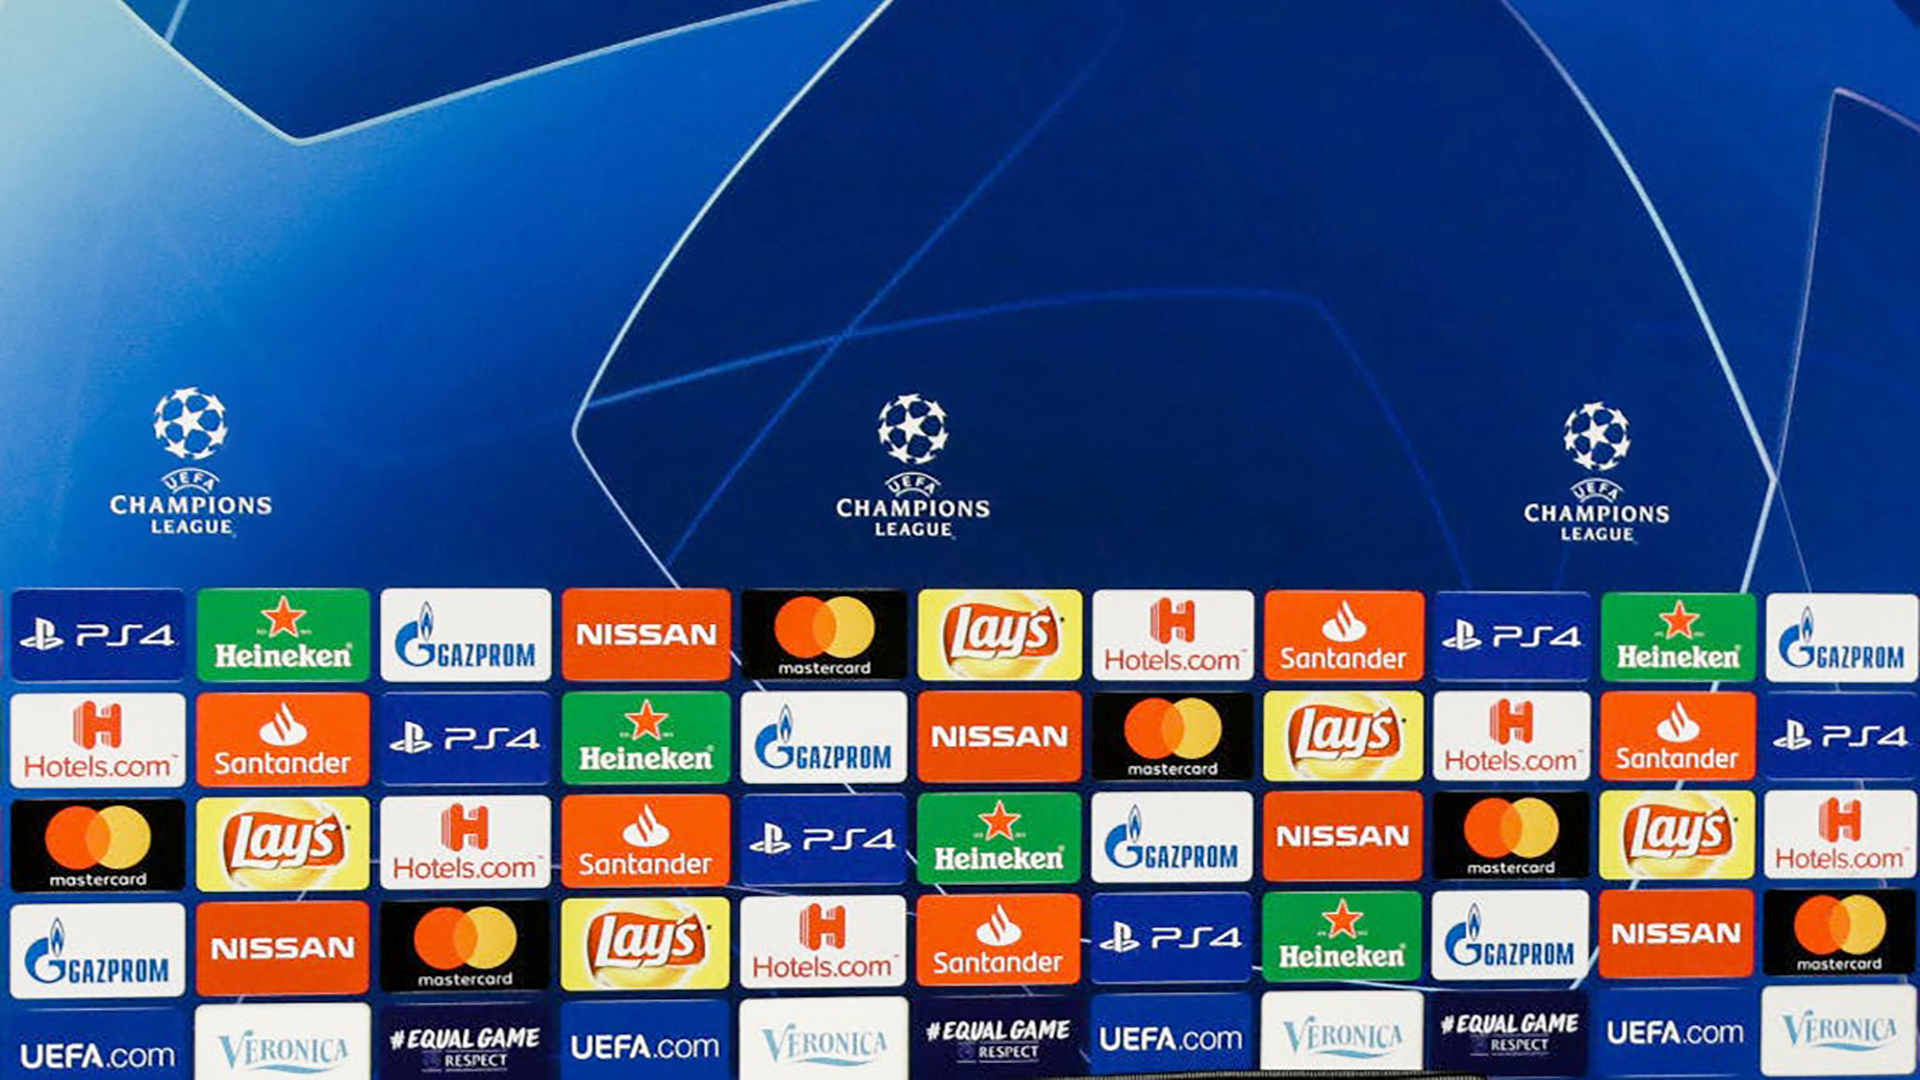 UEFA Champions League sponsors board. Virtual background to use on Zoom, Microsoft Teams, Skype, Google Meet, WebEx or any other compatible app.